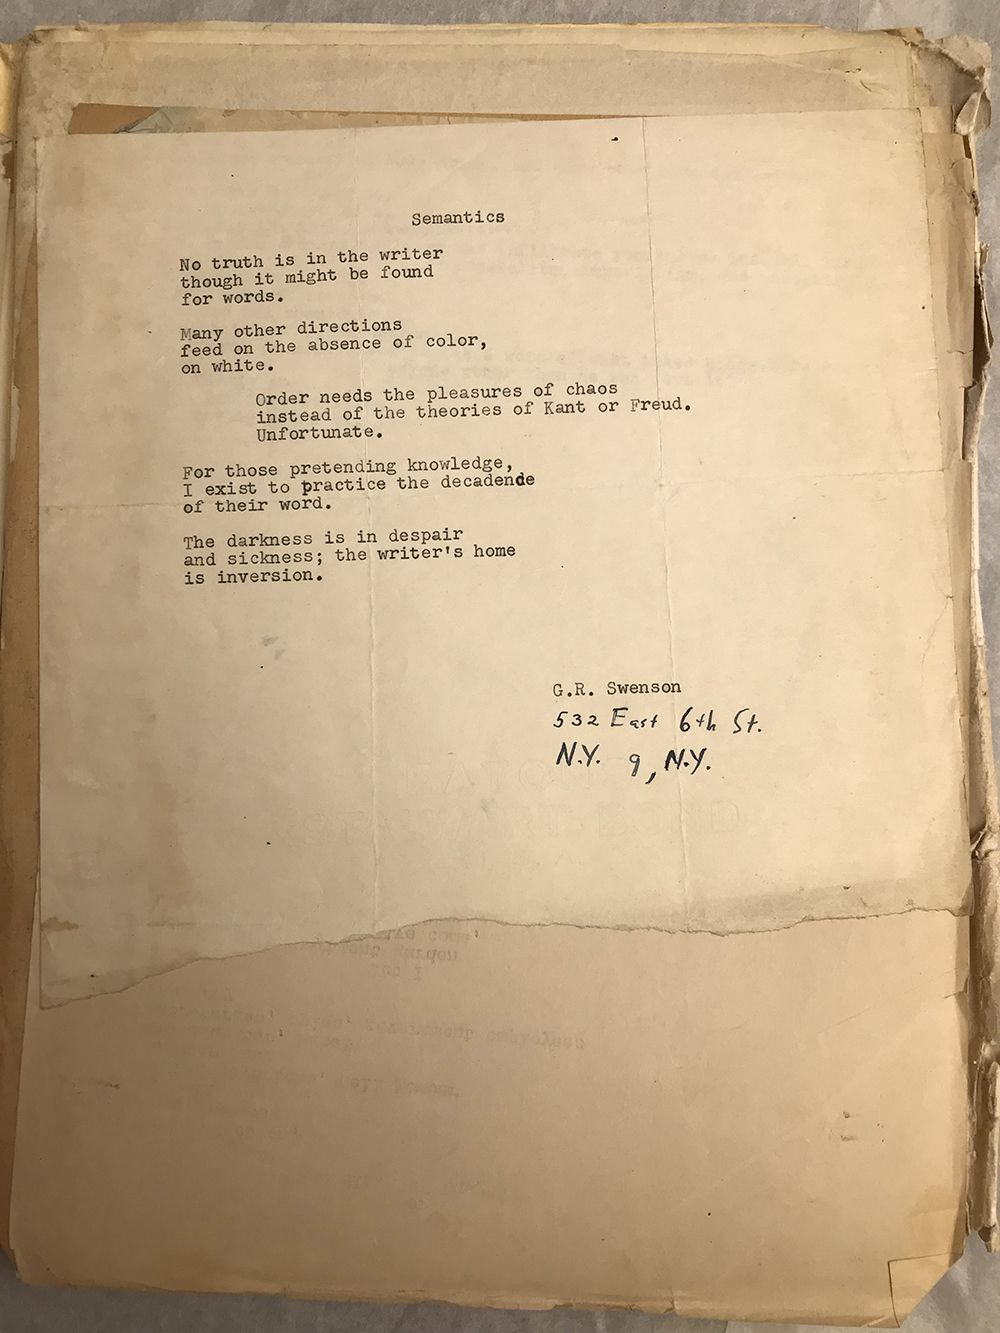 Yellowed page containing a typed poem by Gene Swenson